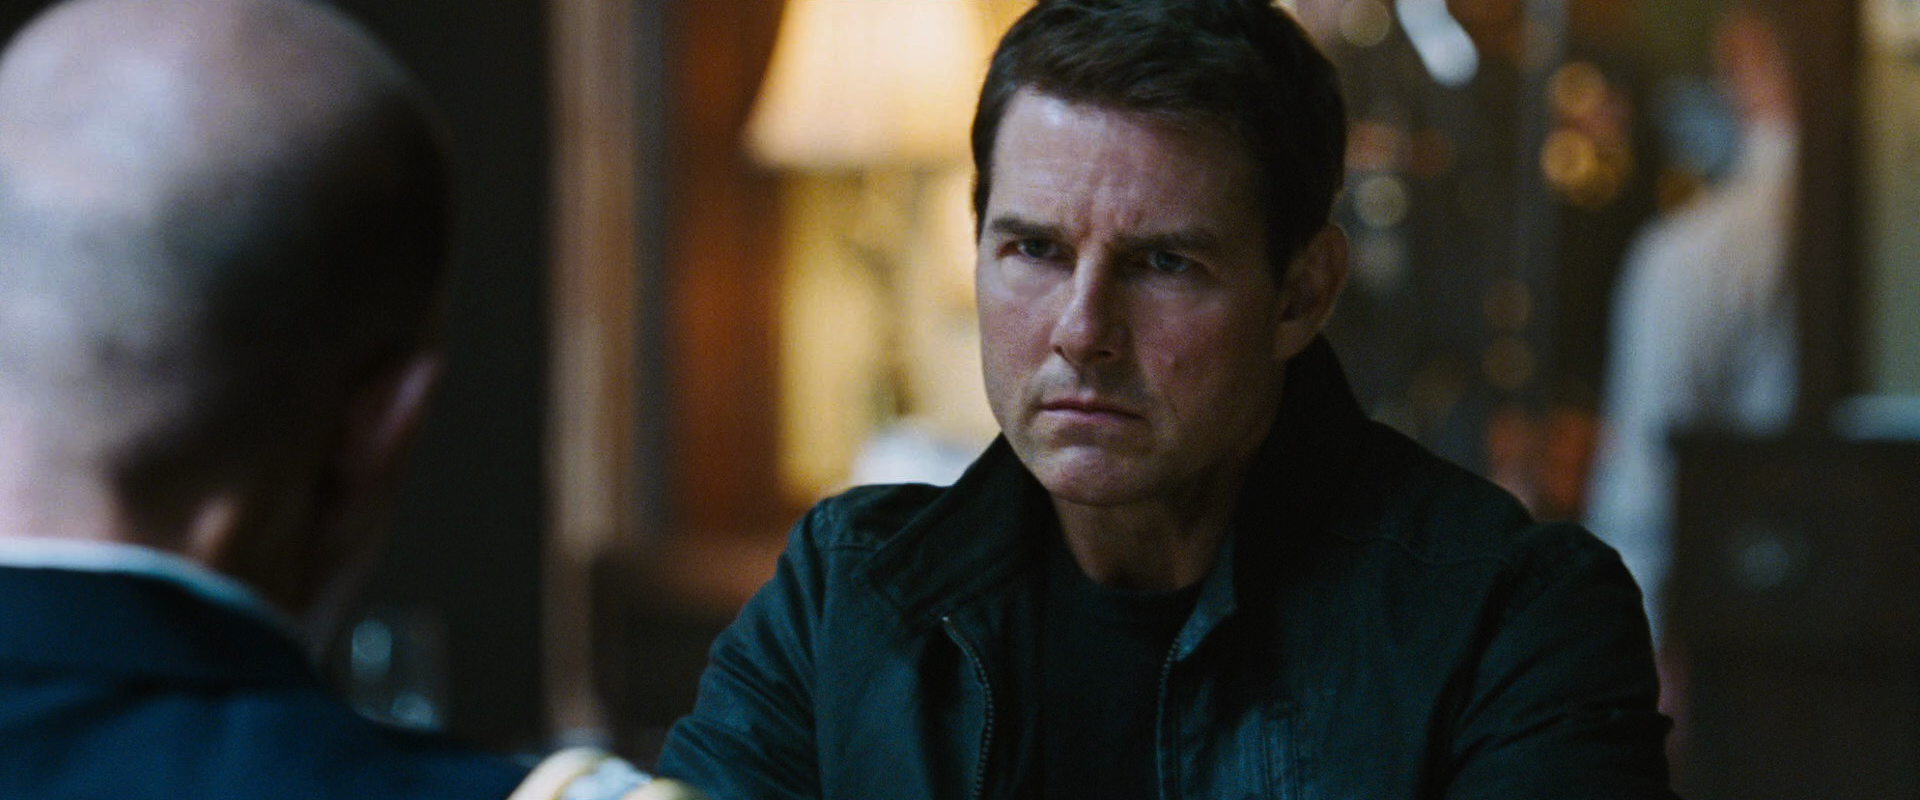 Jack Reacher Never Go Back 2016 1080p HQ 10bit BluRay 8CH x265 HEVC-MZABI